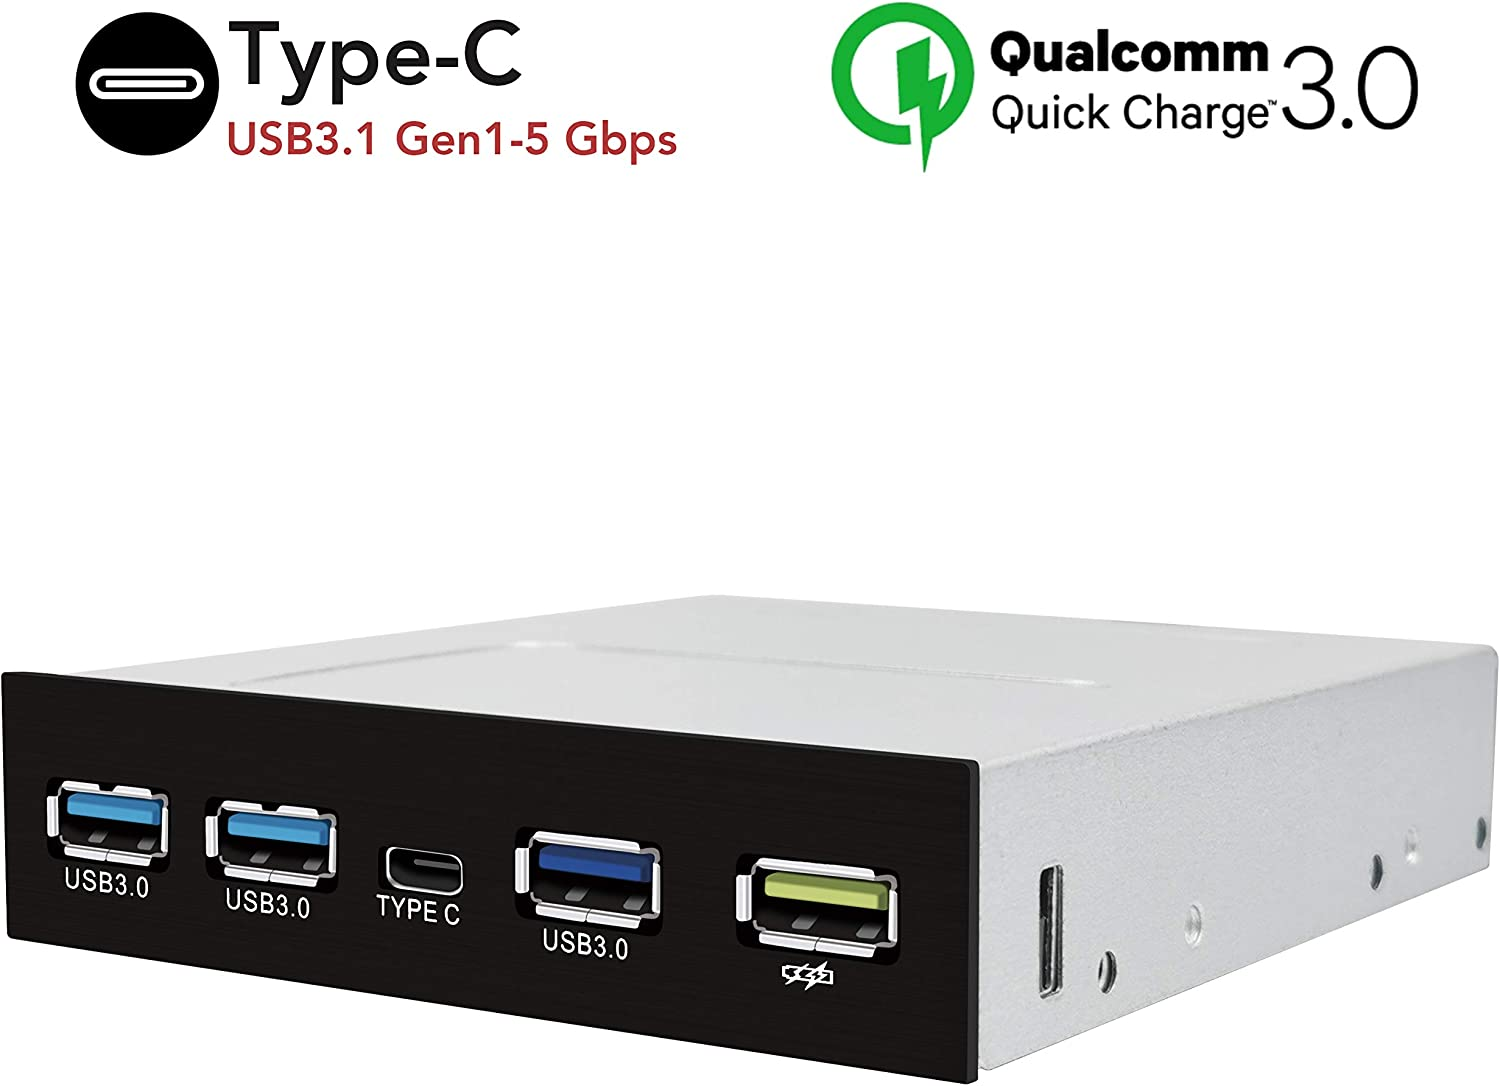 PCIe X4 4 Port USB 3.1 Gen 1 Adapter Real 5Gbps per Port, Total throughput = 20 Gbps Sedna 5Gbps